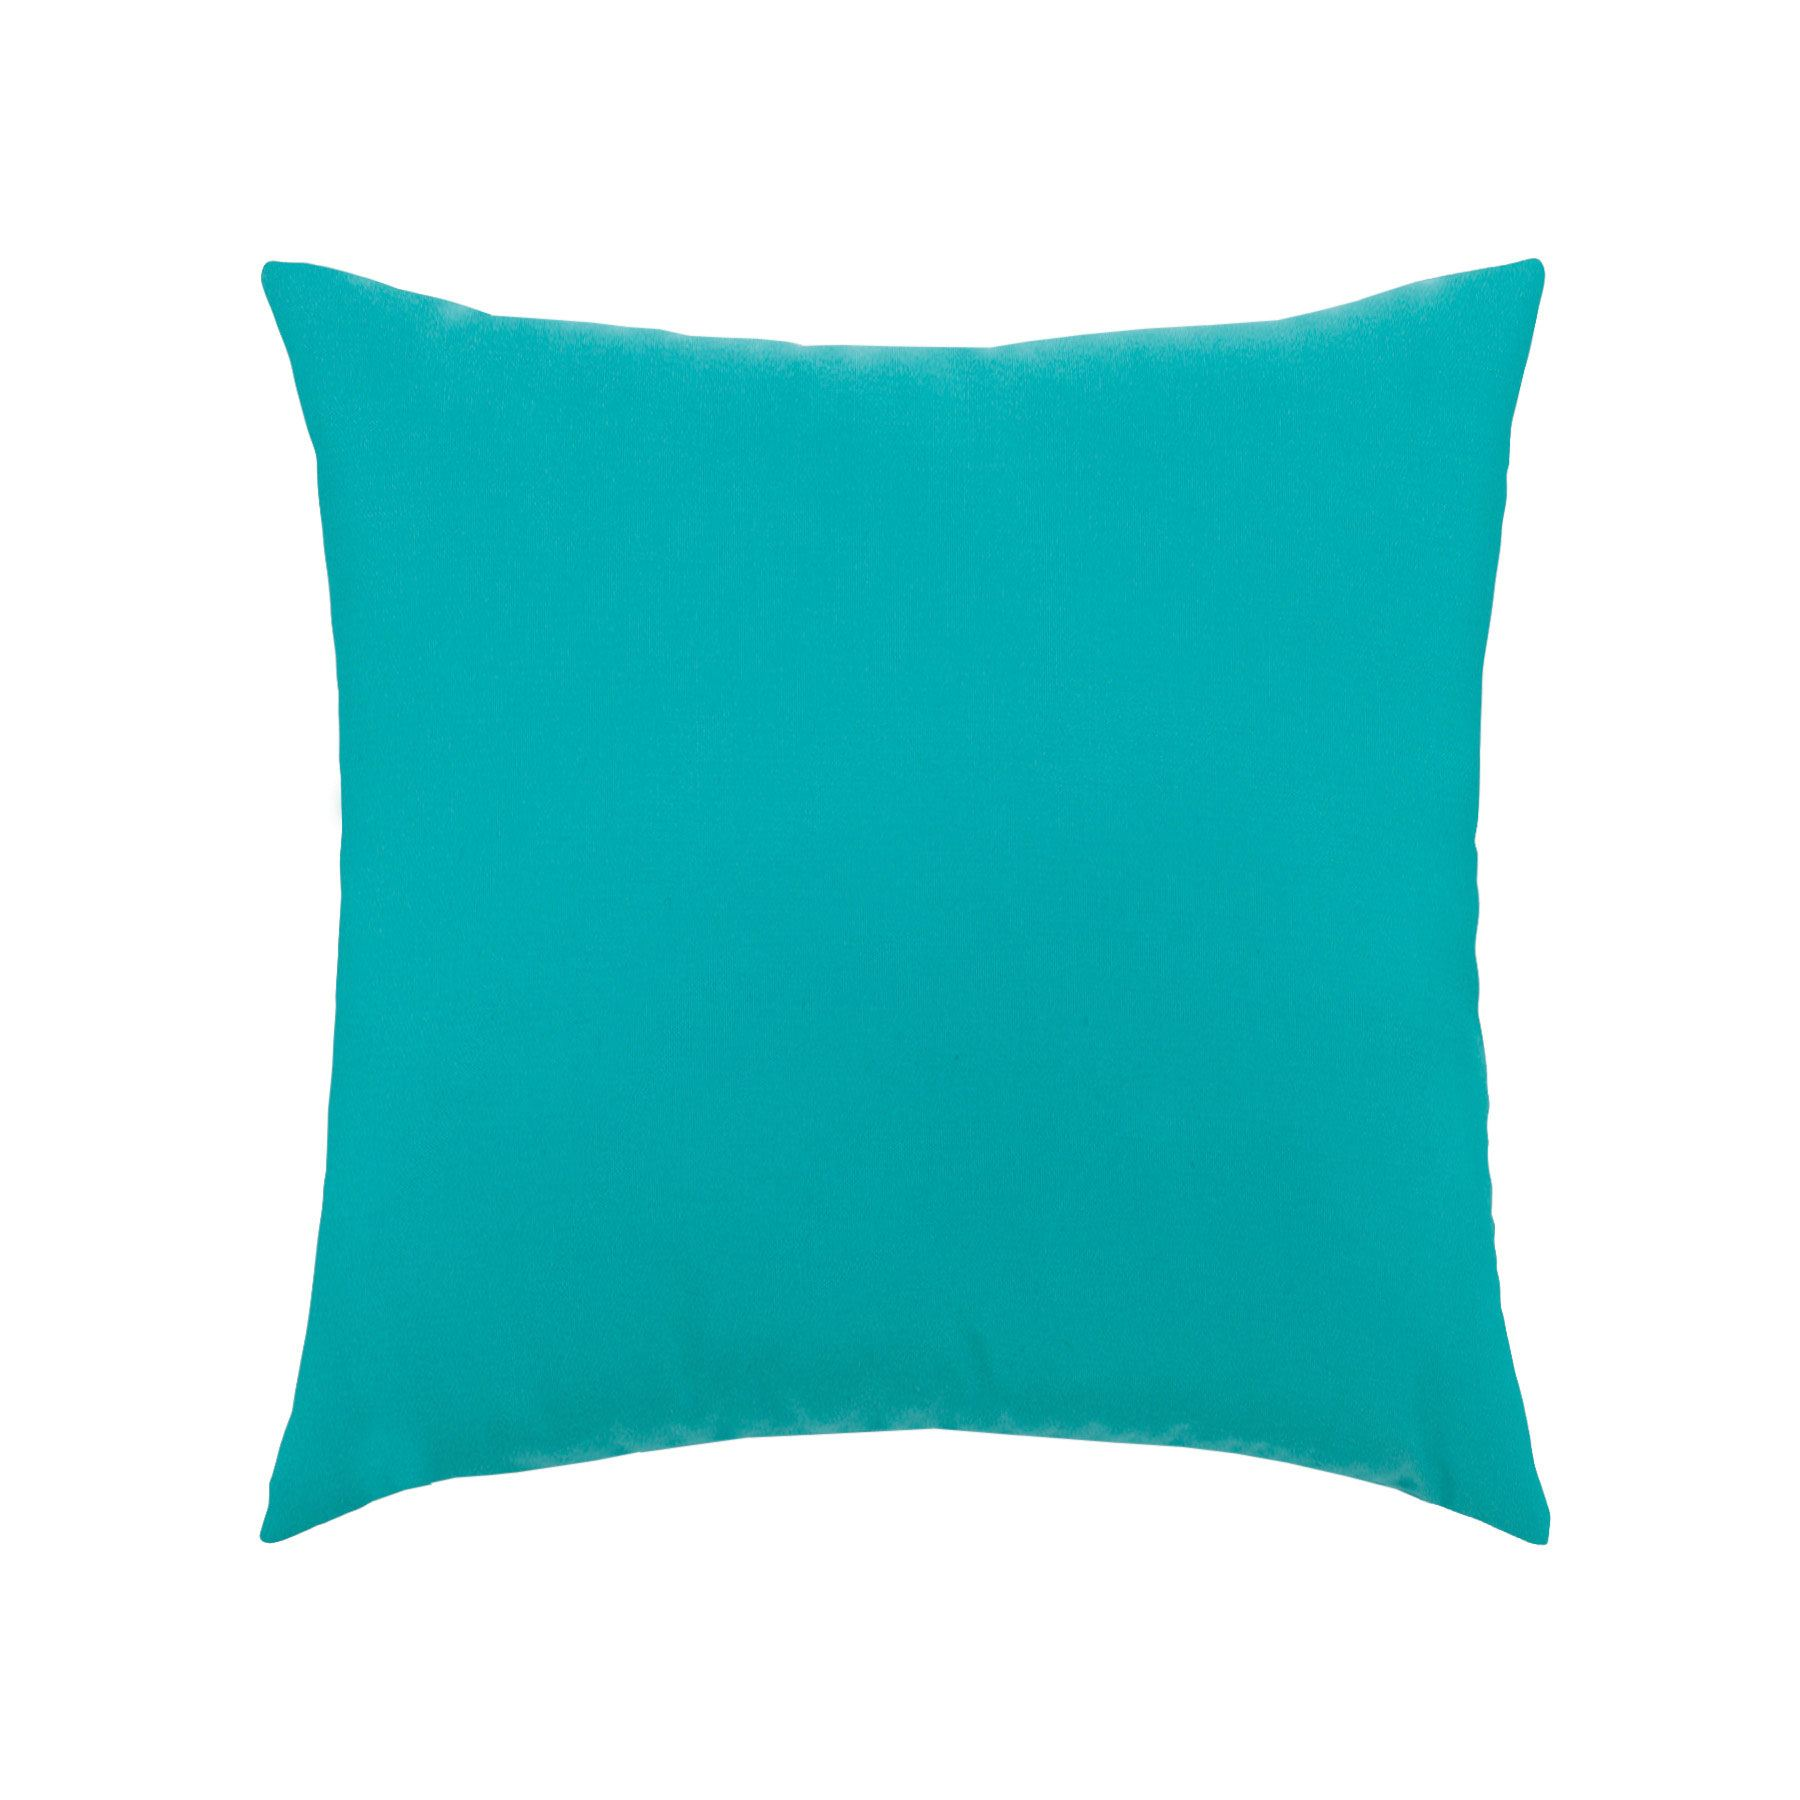 Elaine Smith Canvas Aruba Throw Pillow Leisure Living